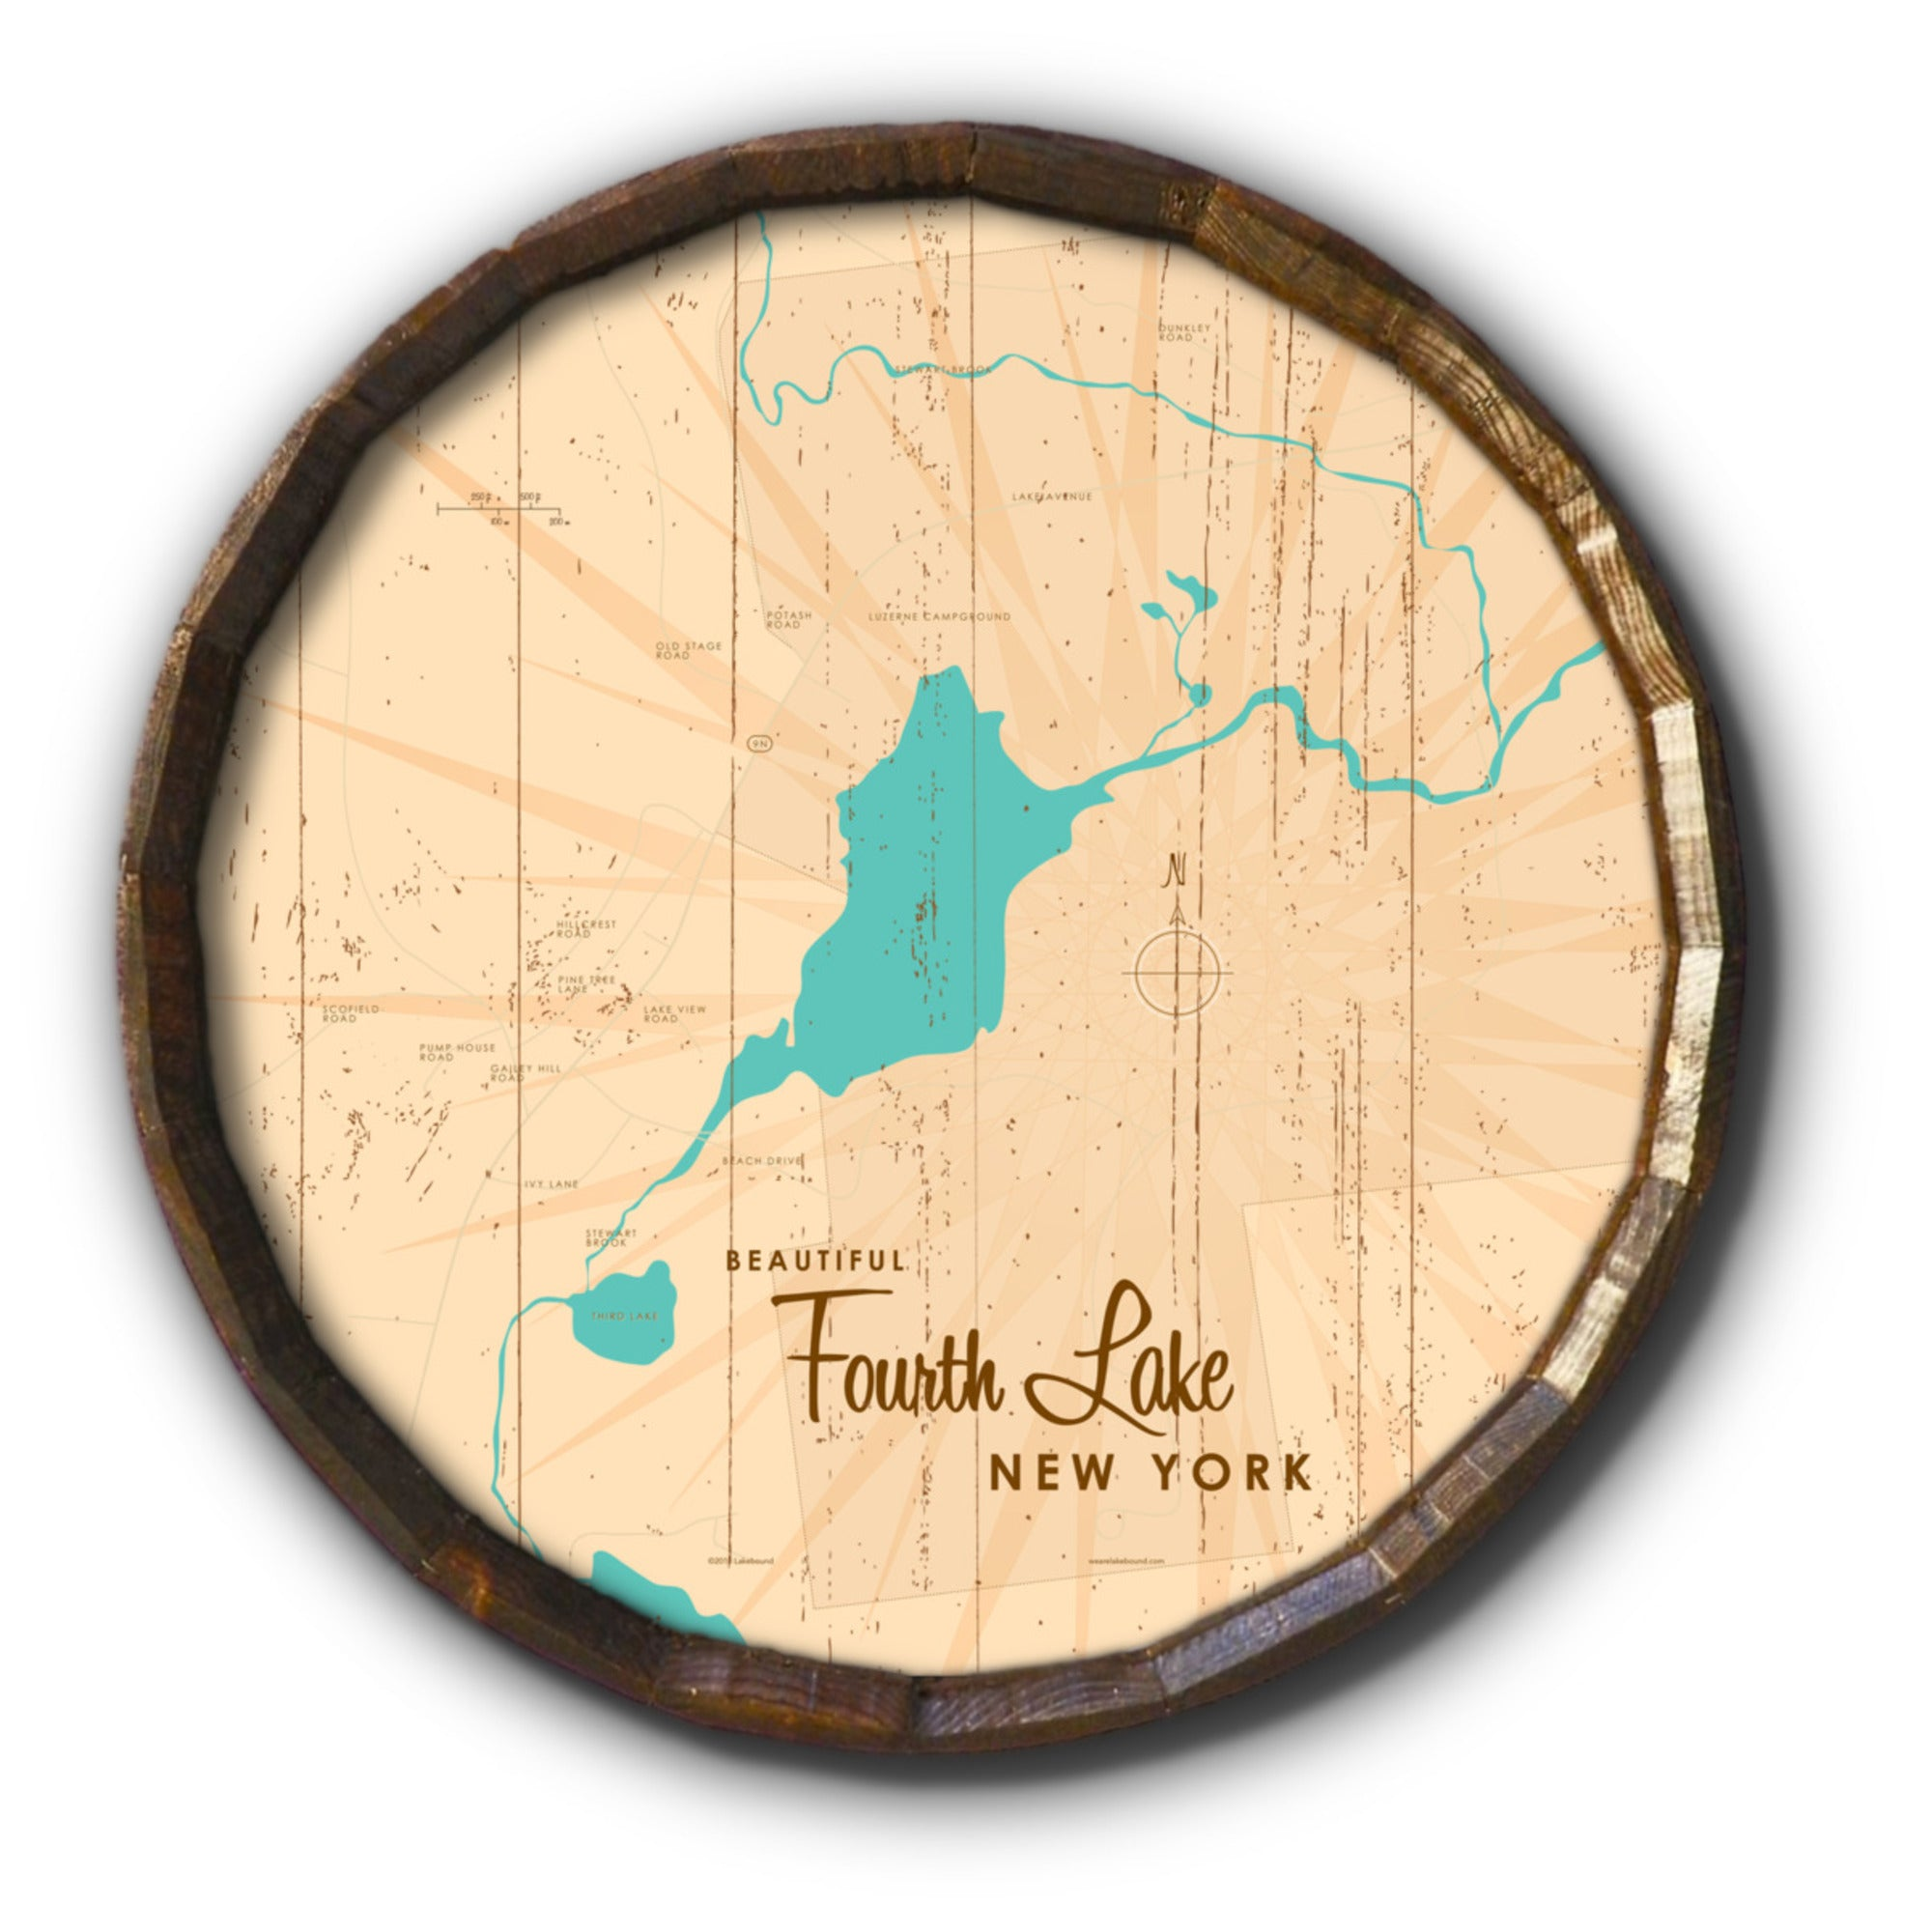 Fourth Lake NY (Warren County), Rustic Barrel End Map Art